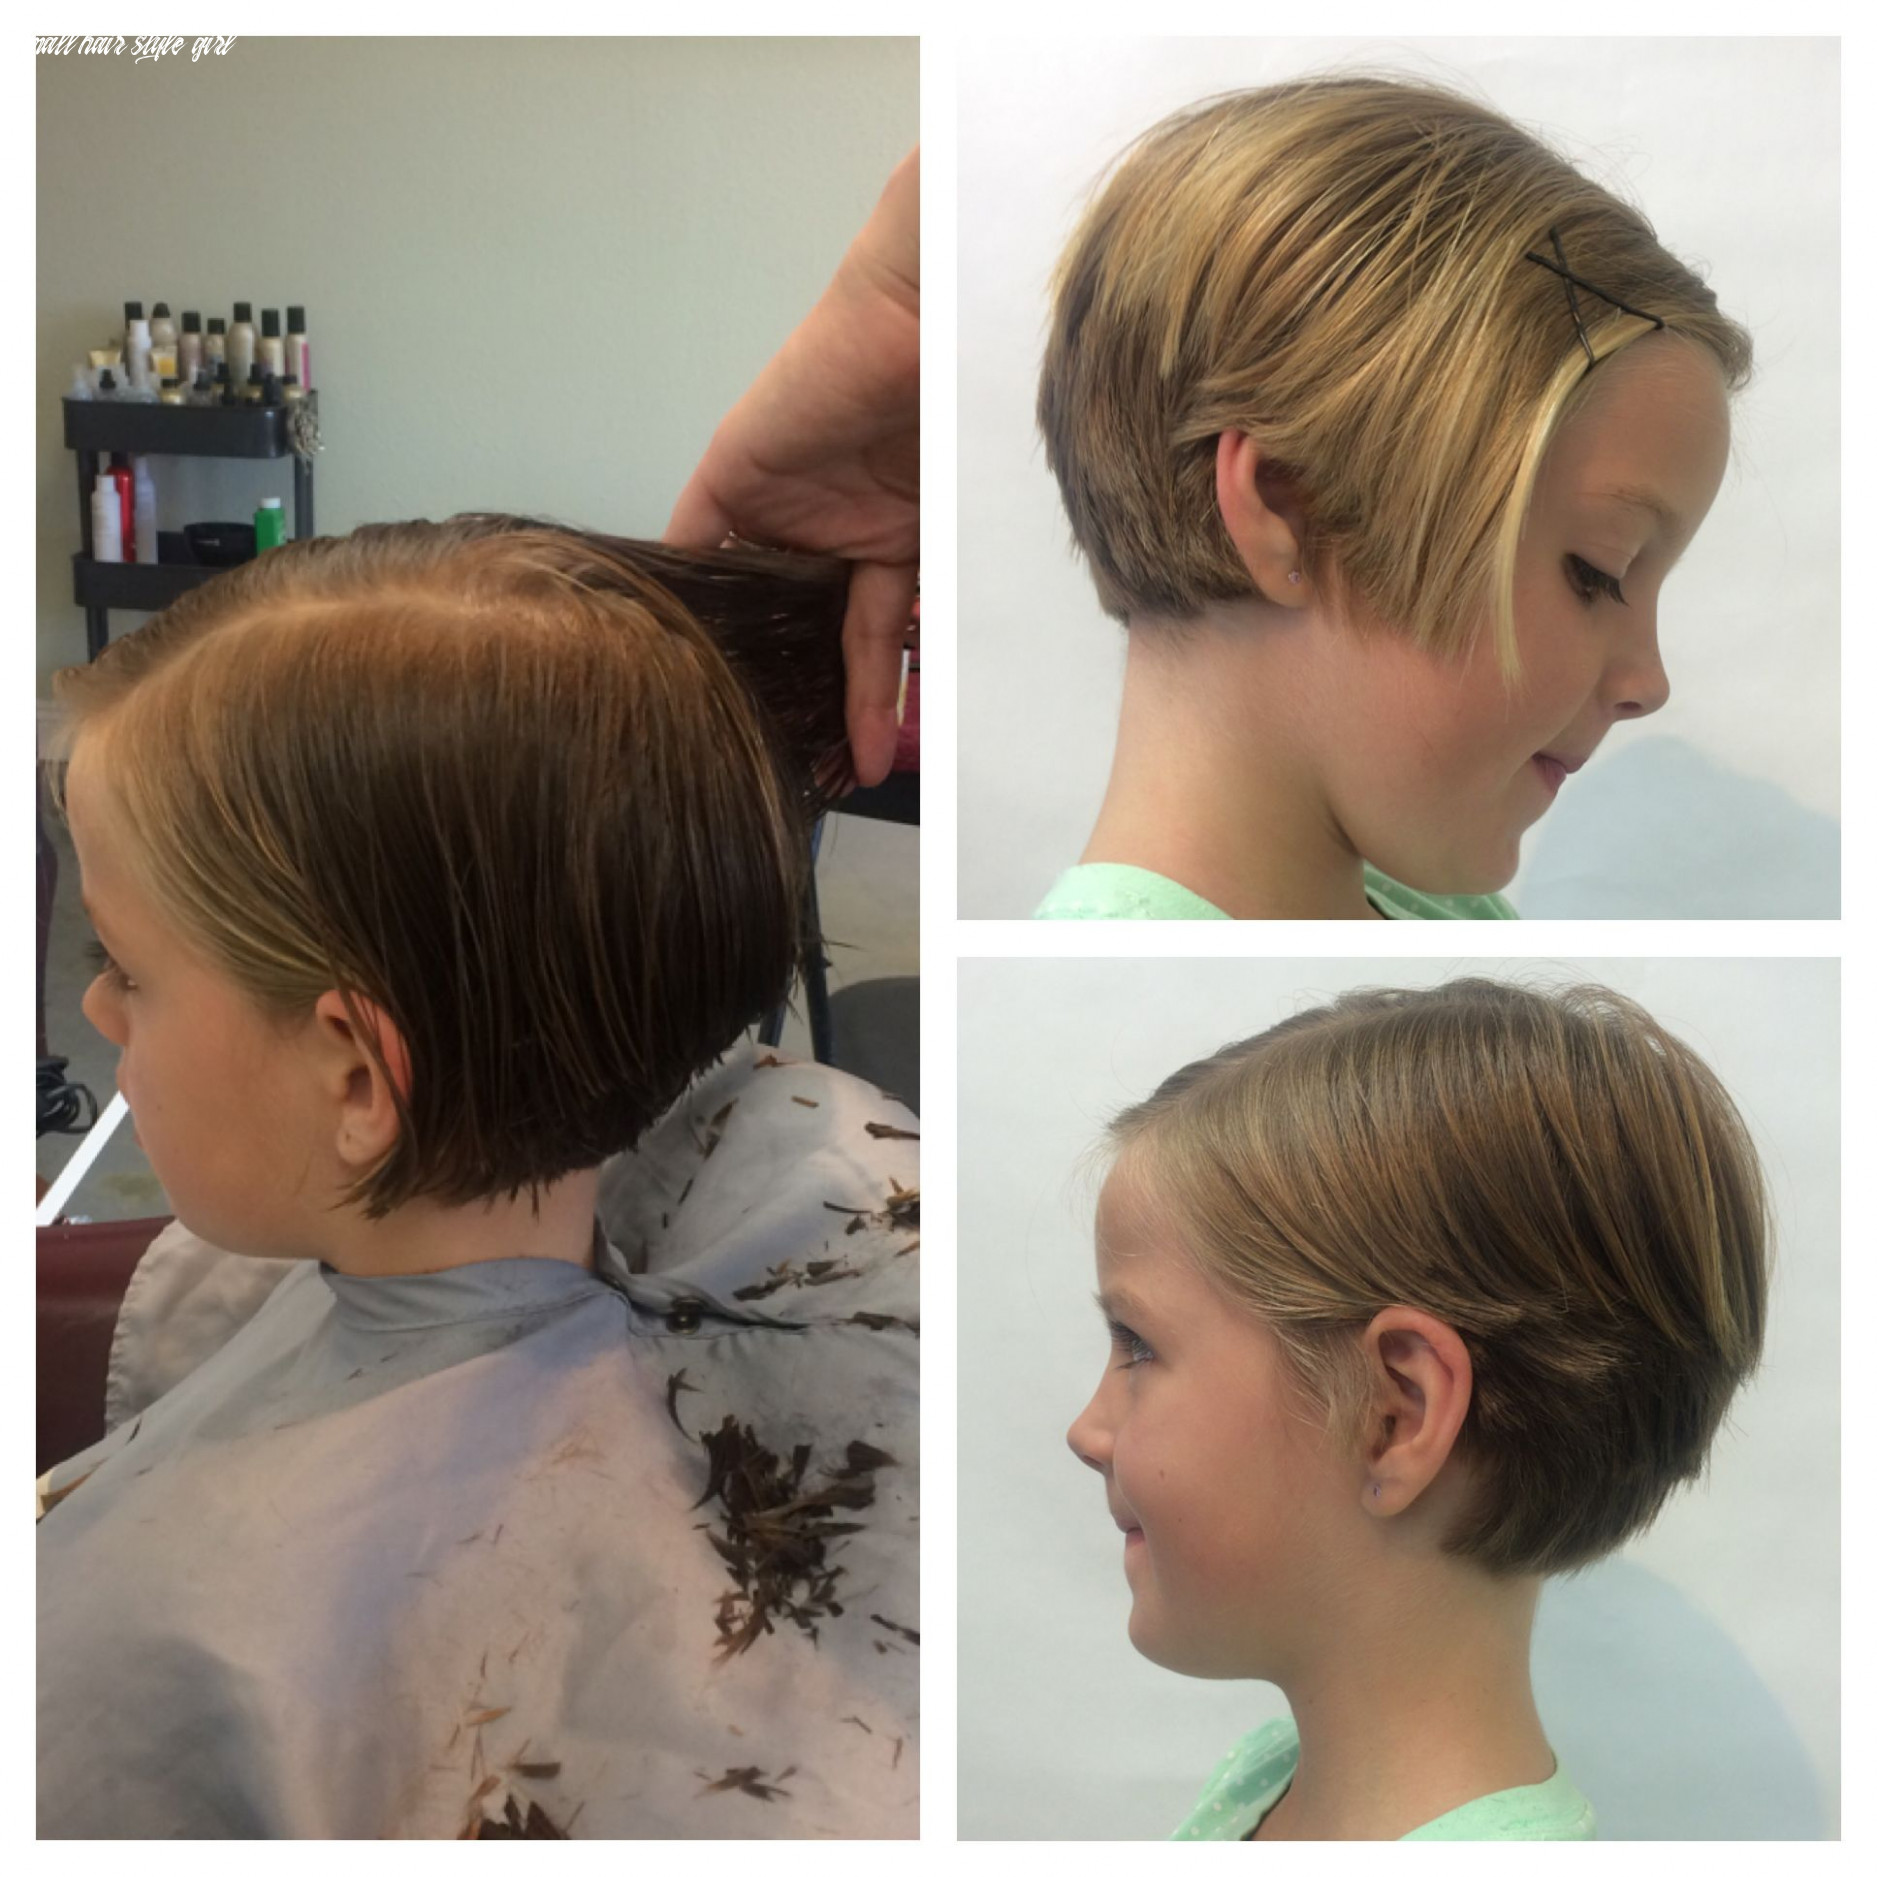 Pin on h a i r small hair style girl